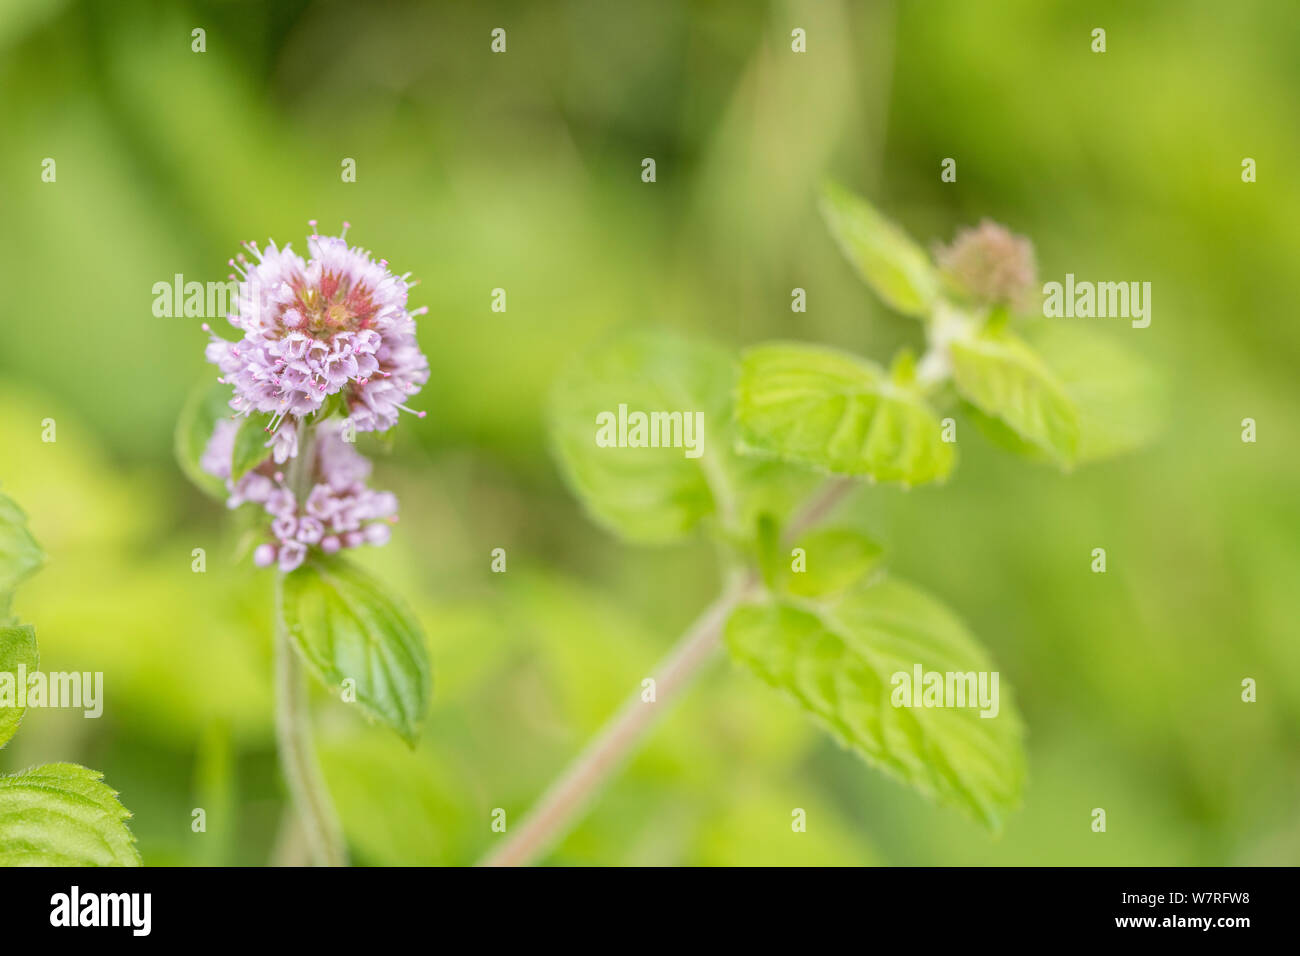 Flowers of Water Mint / Mentha aquatica growing in a wet meadow. Hygrophilous plants concept. Stock Photo